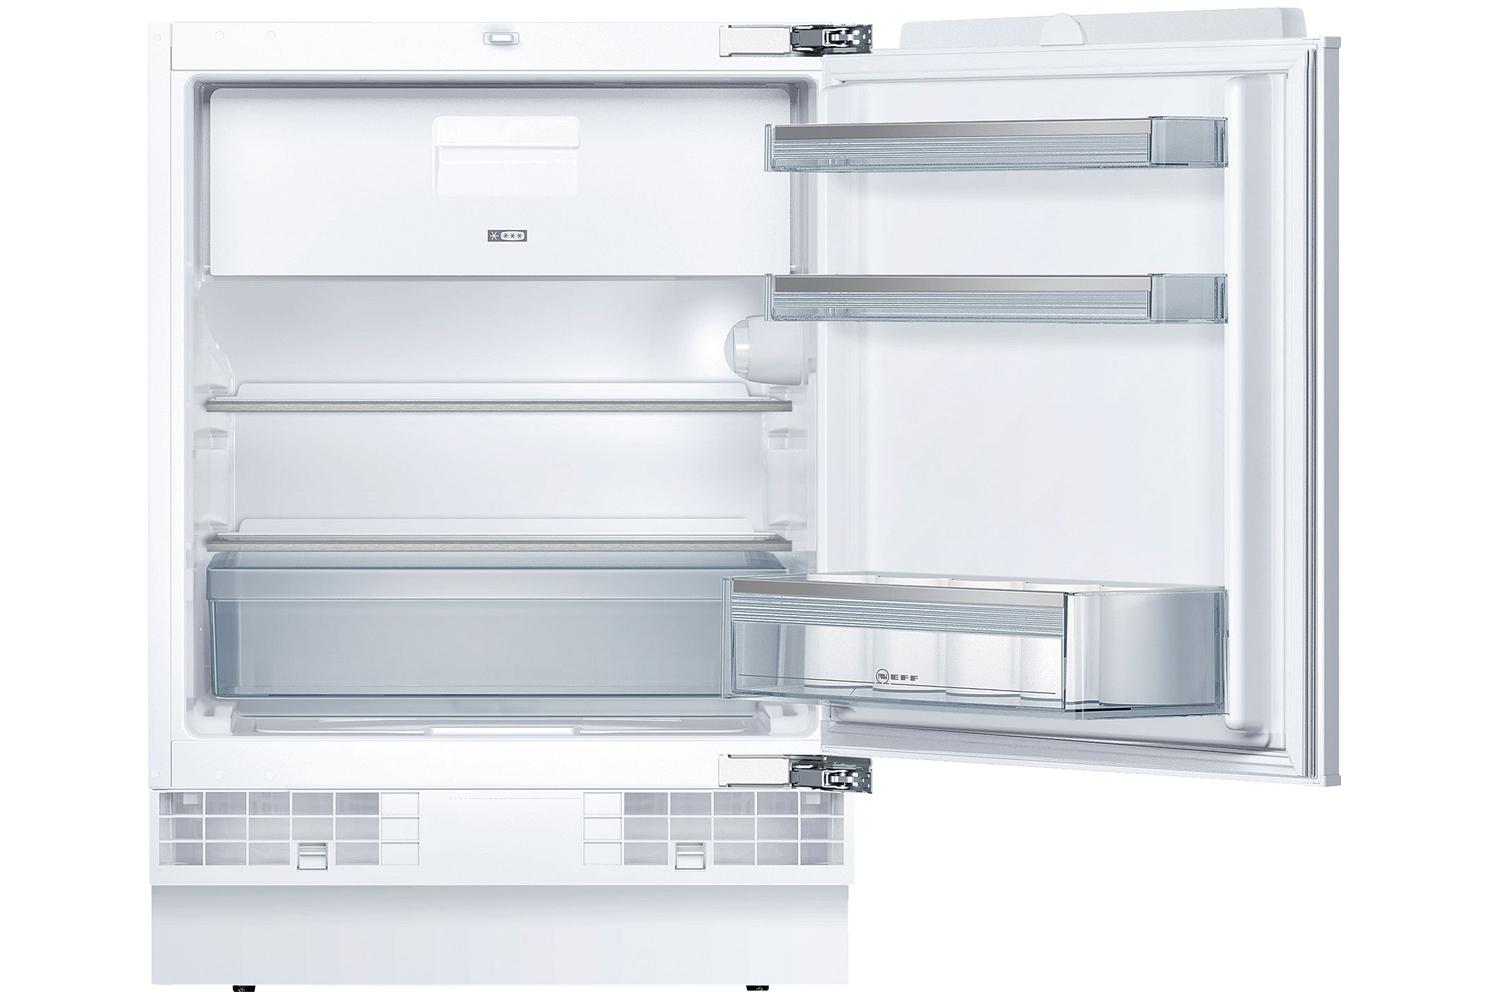 Neff Integrated Under Counter Fridge K4336x8gb